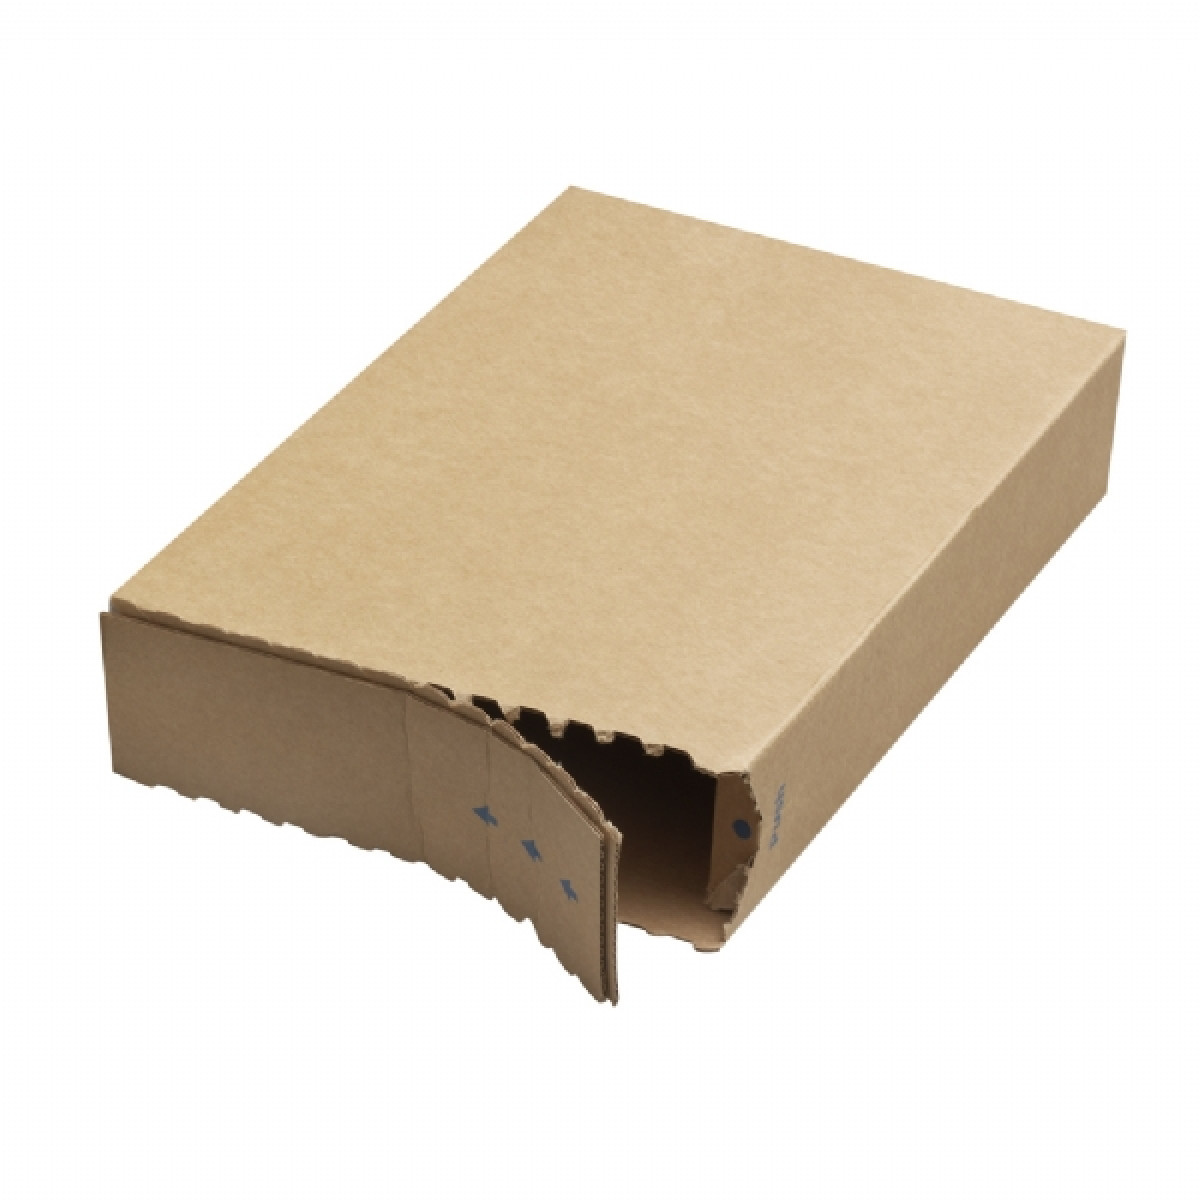 Packbox Pb40 243x46x346mm